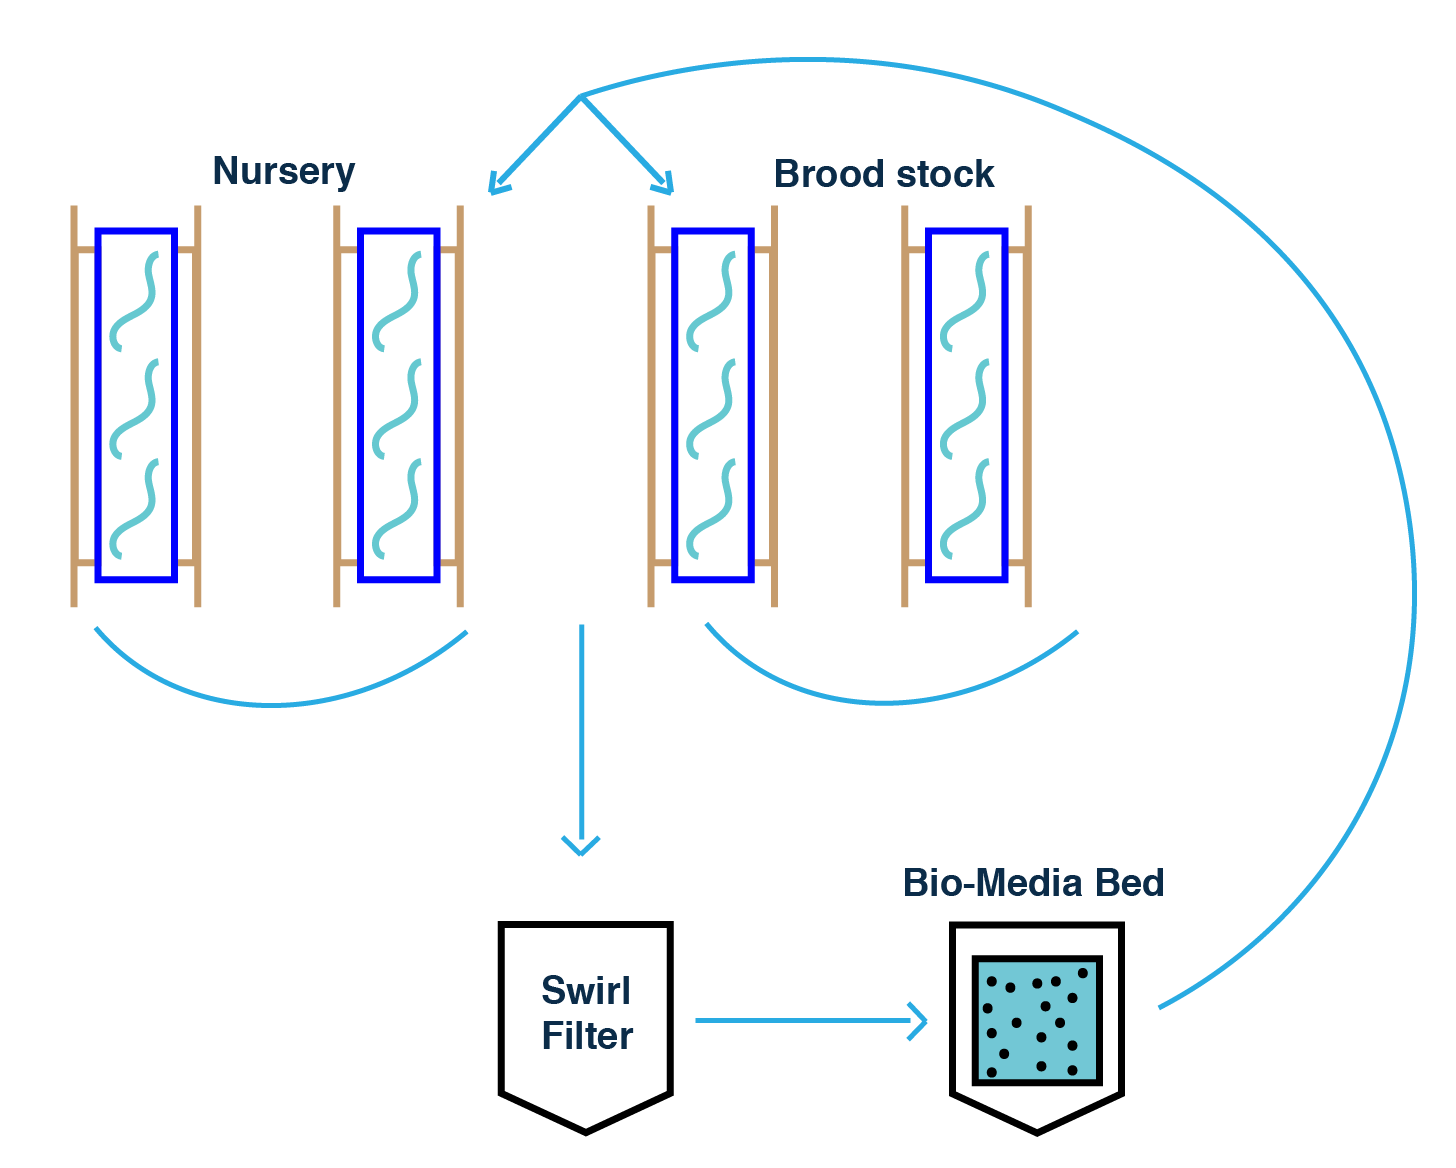 hight resolution of the new design will separate the brood stock and nursery from the main aquaponics system the design incorporates another bio media bed which is an